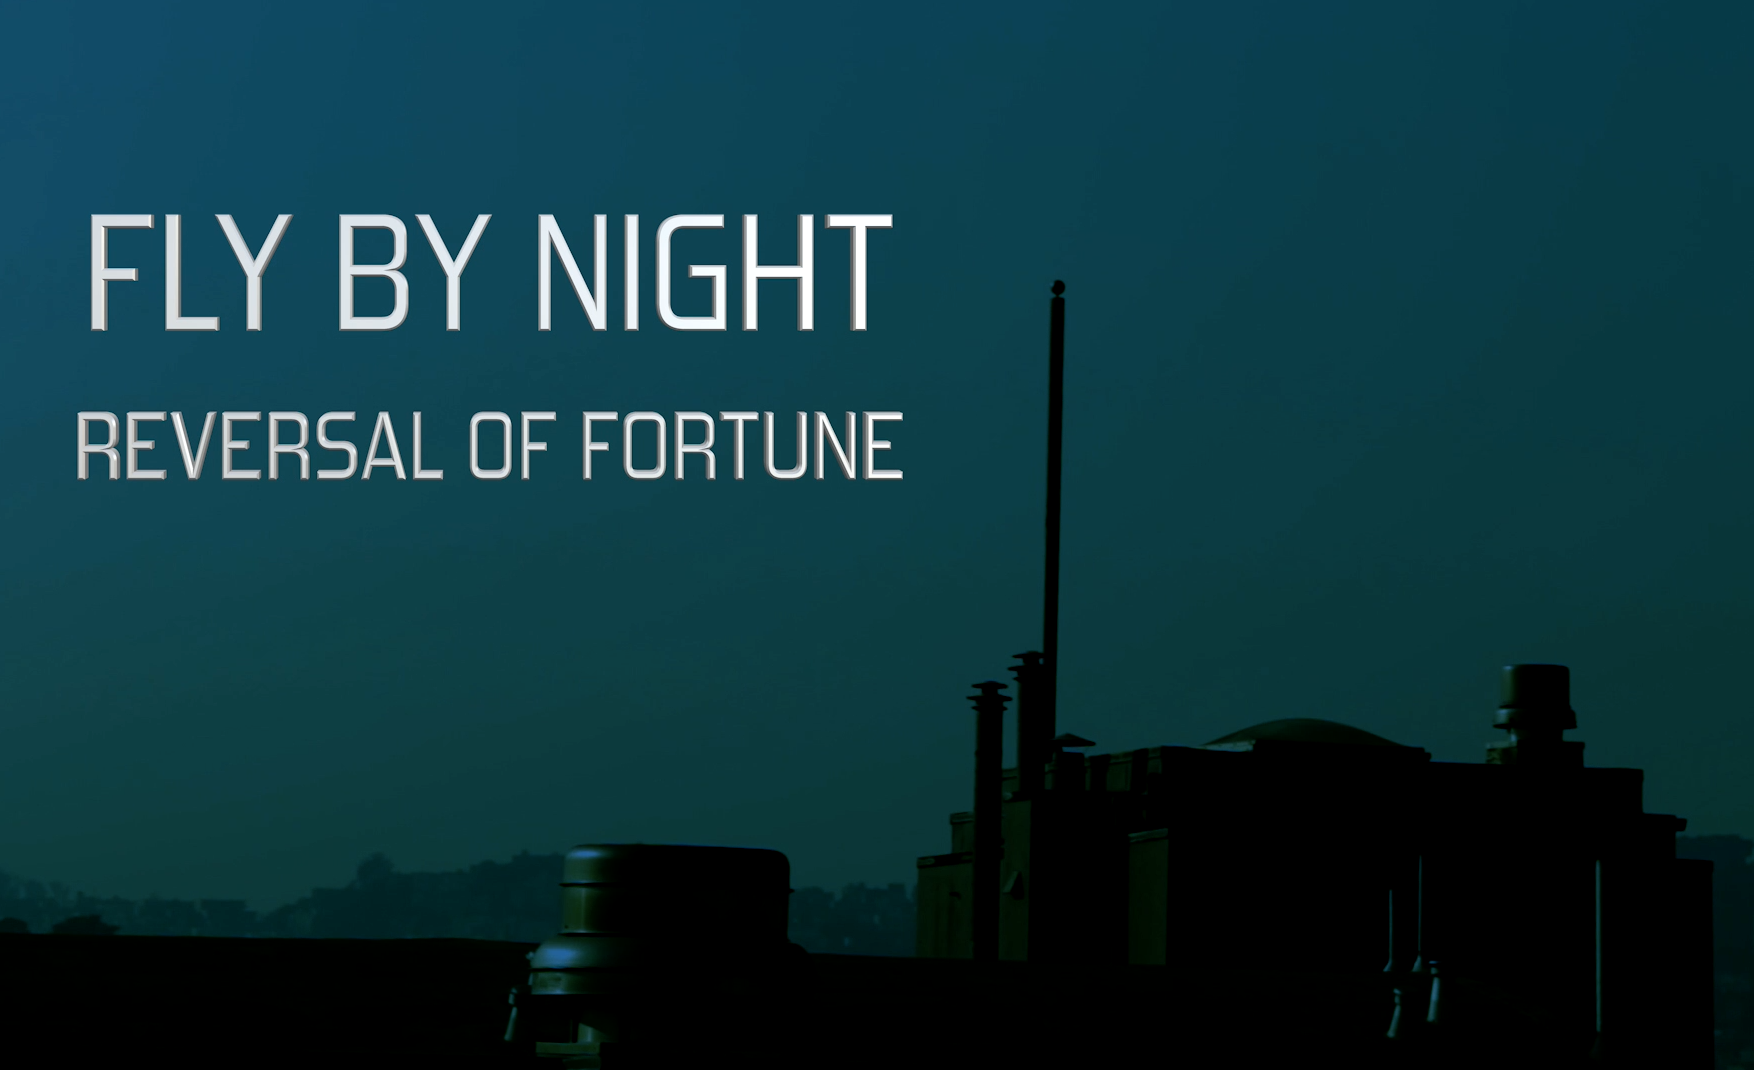 FLY BY NIGHT: REVERSAL OF FORTUNE